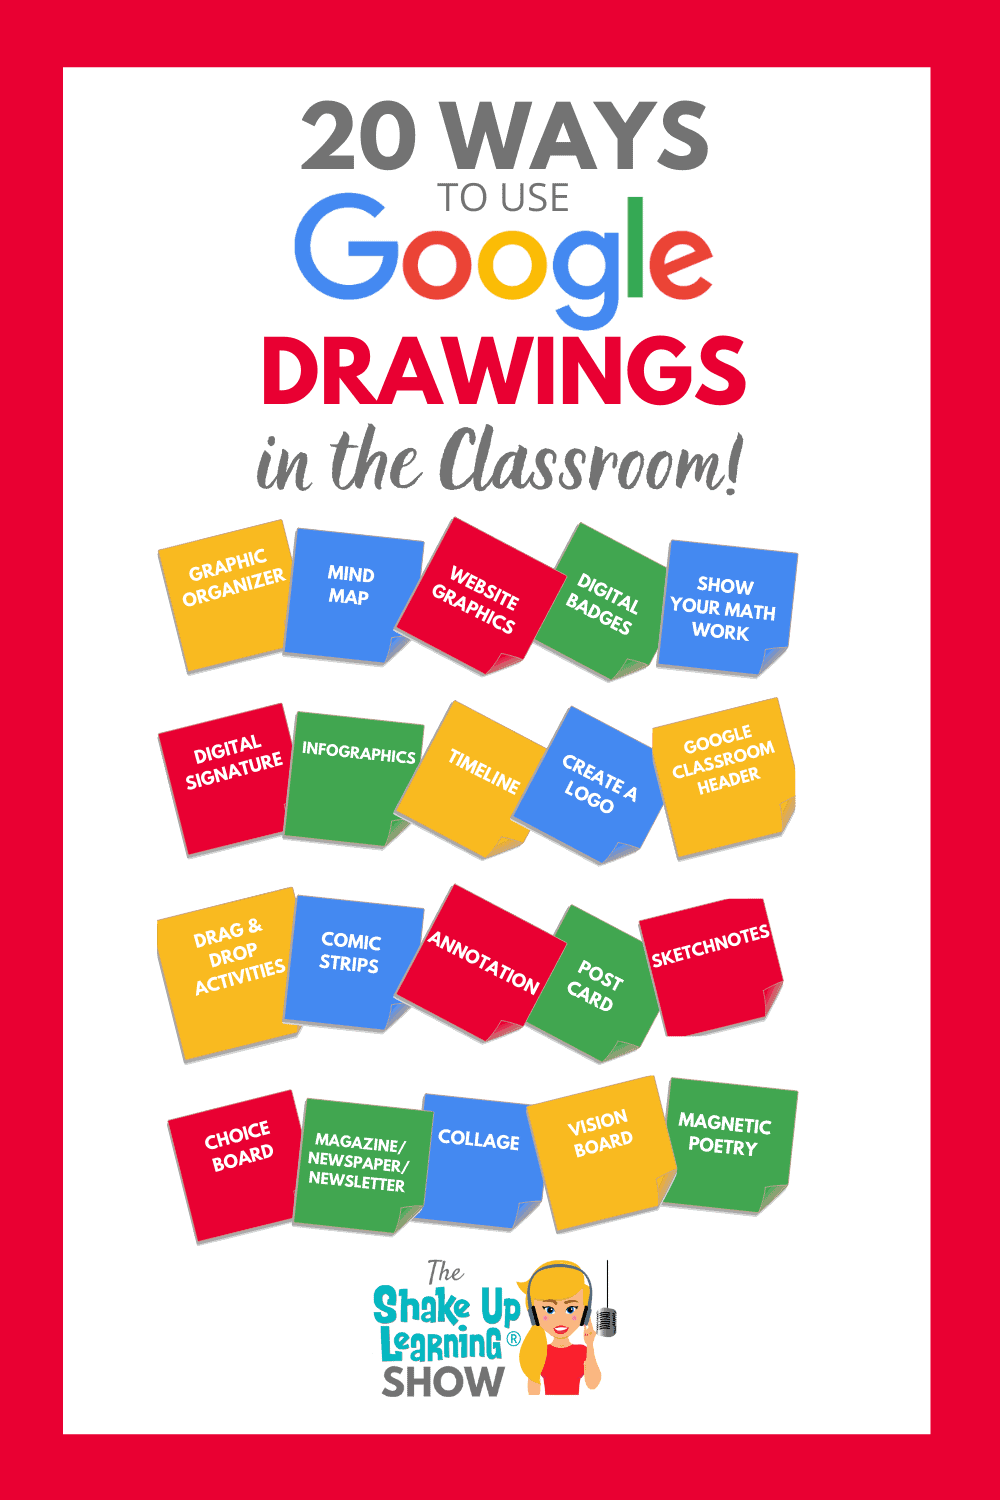 20 Ways to Use Google Drawings in the Classroom